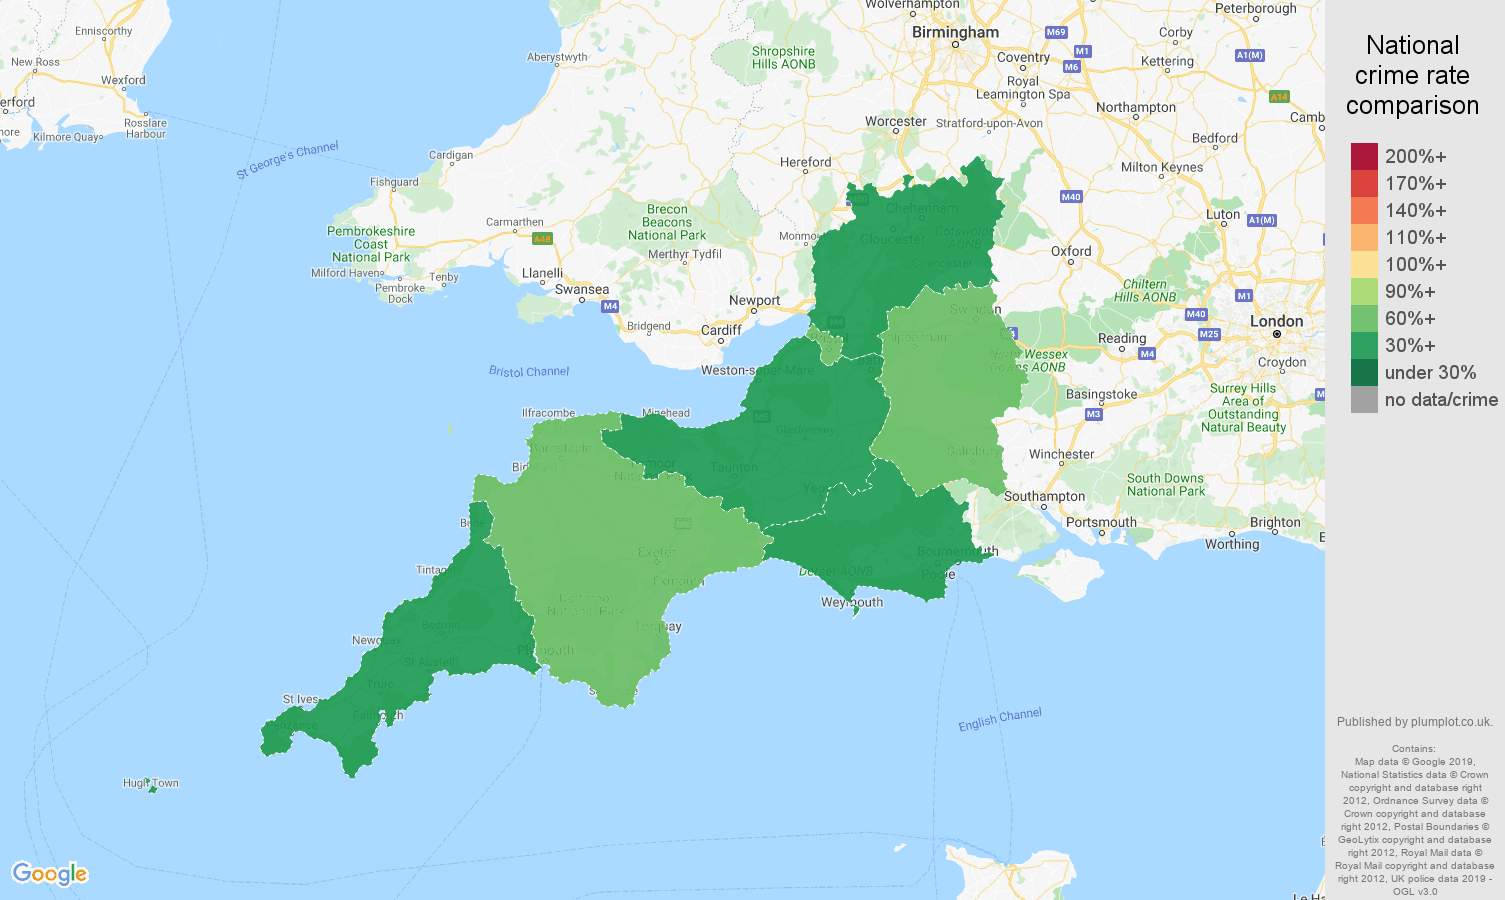 South West other crime rate comparison map